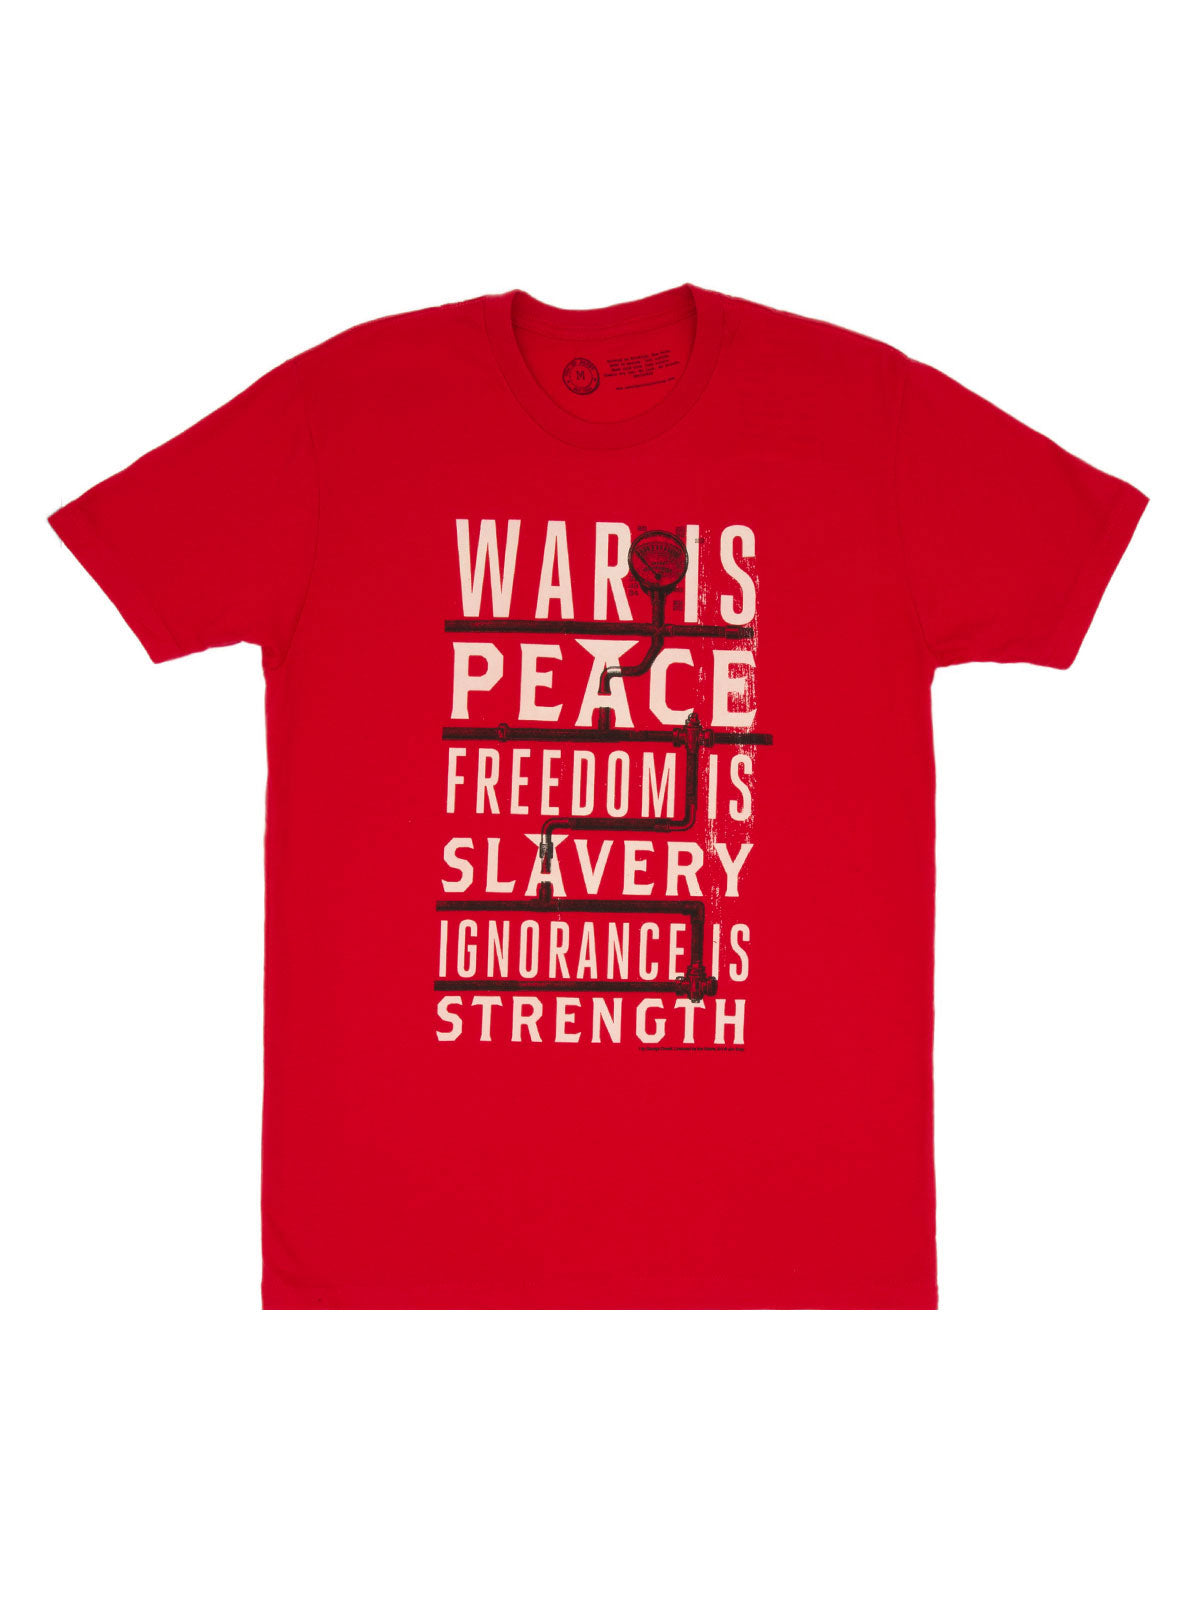 1984 - War is Peace